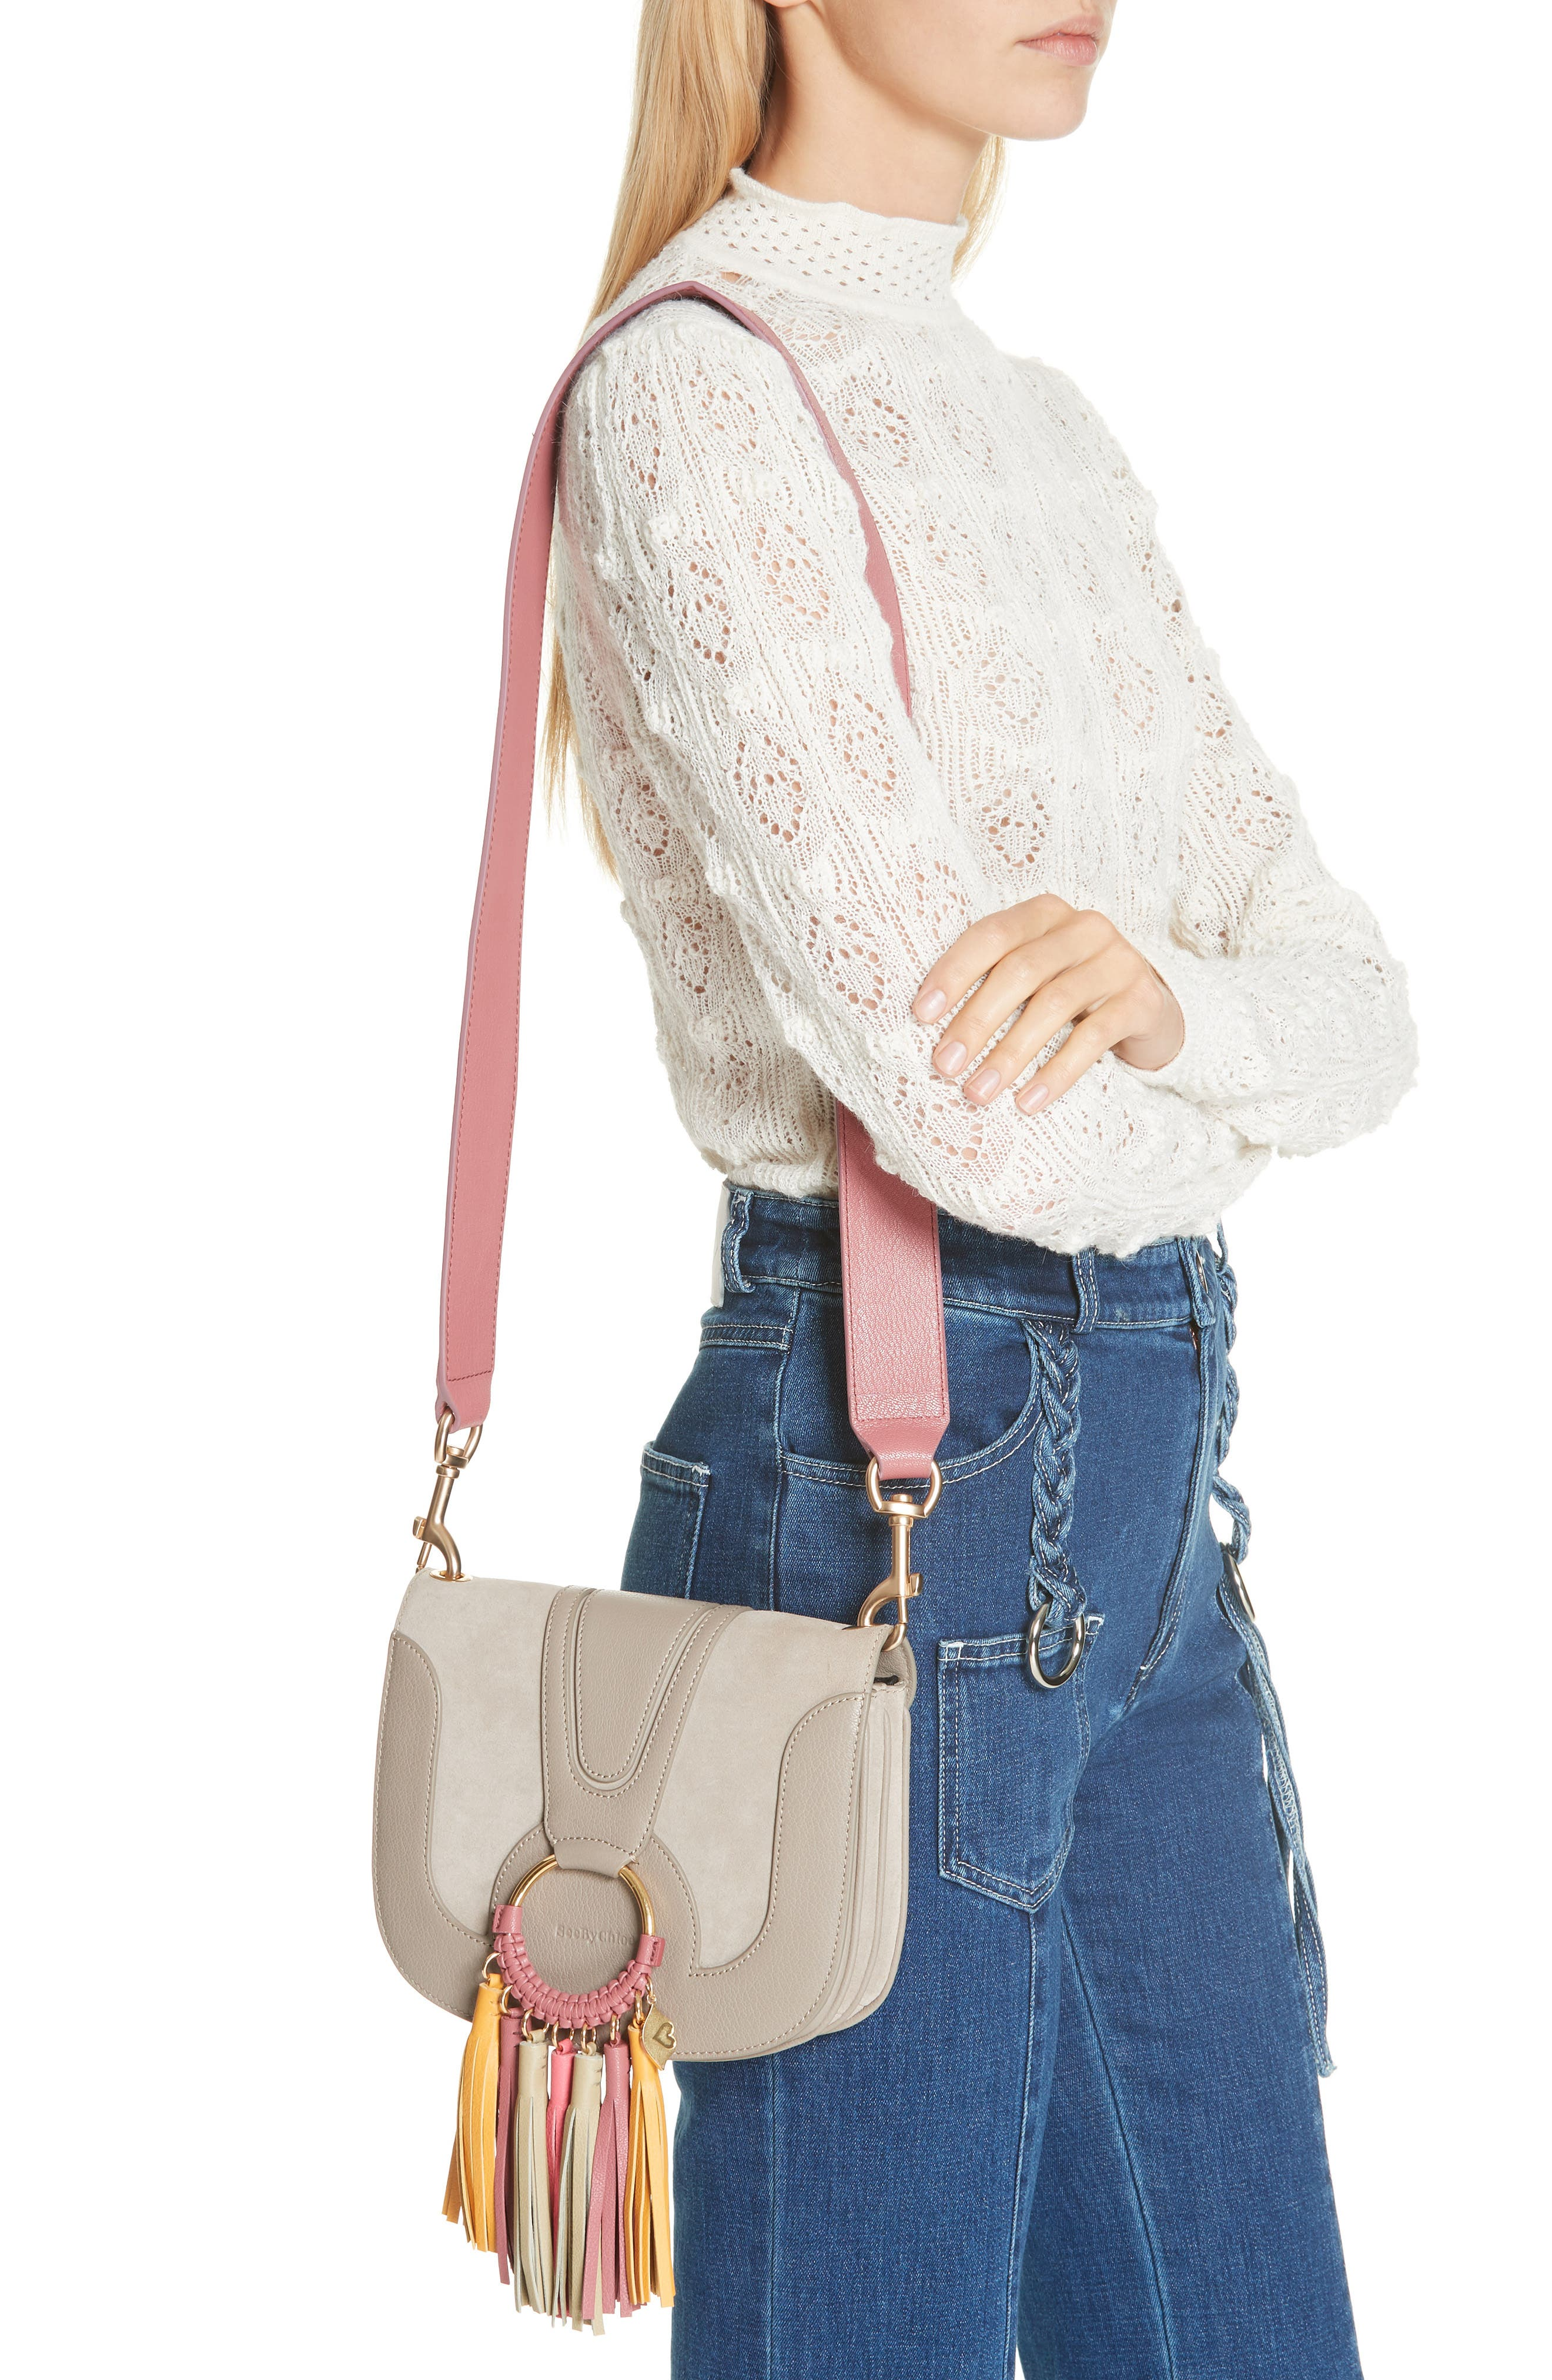 Hana Leather Shoulder Bag,                             Alternate thumbnail 2, color,                             020